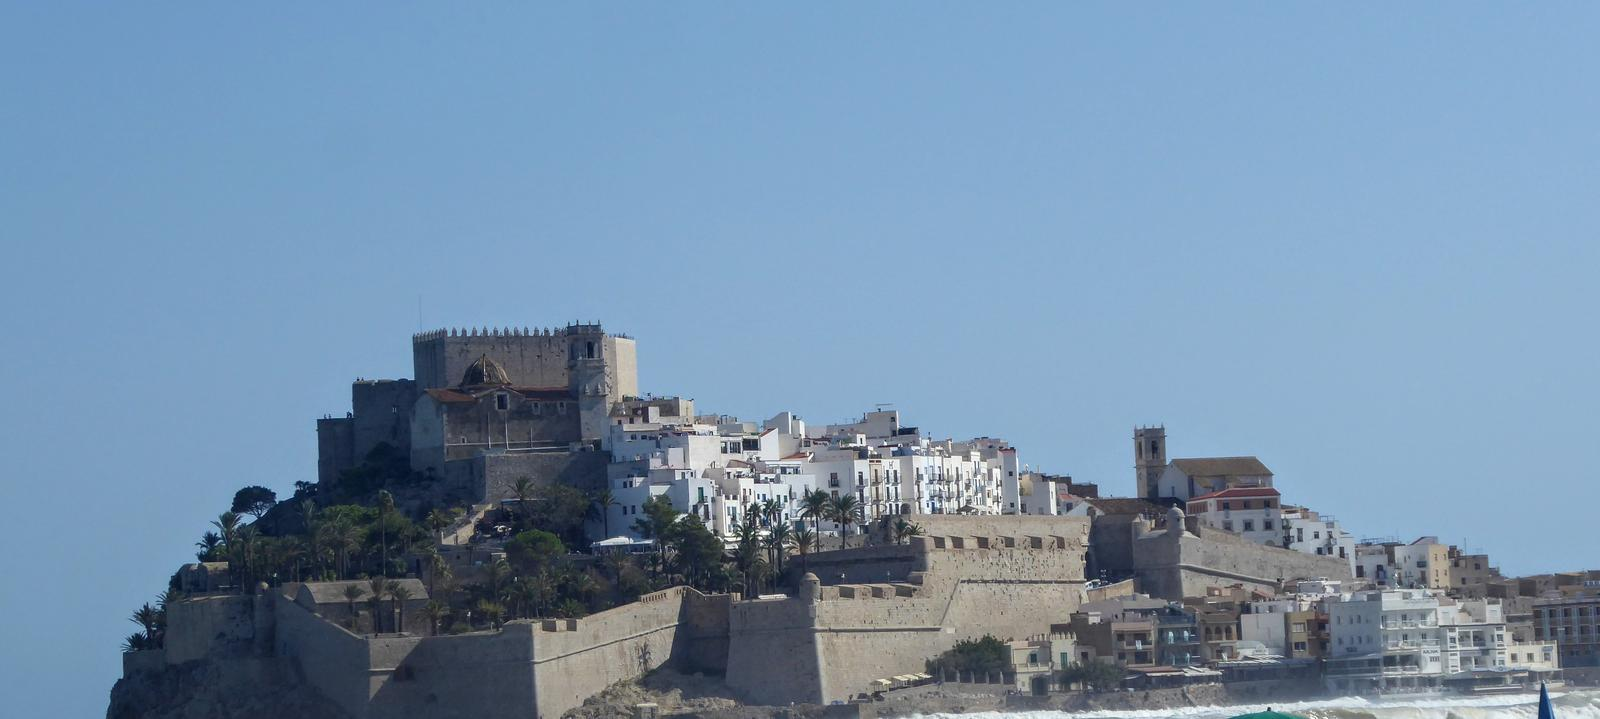 Photo of Castillo de Peñíscola